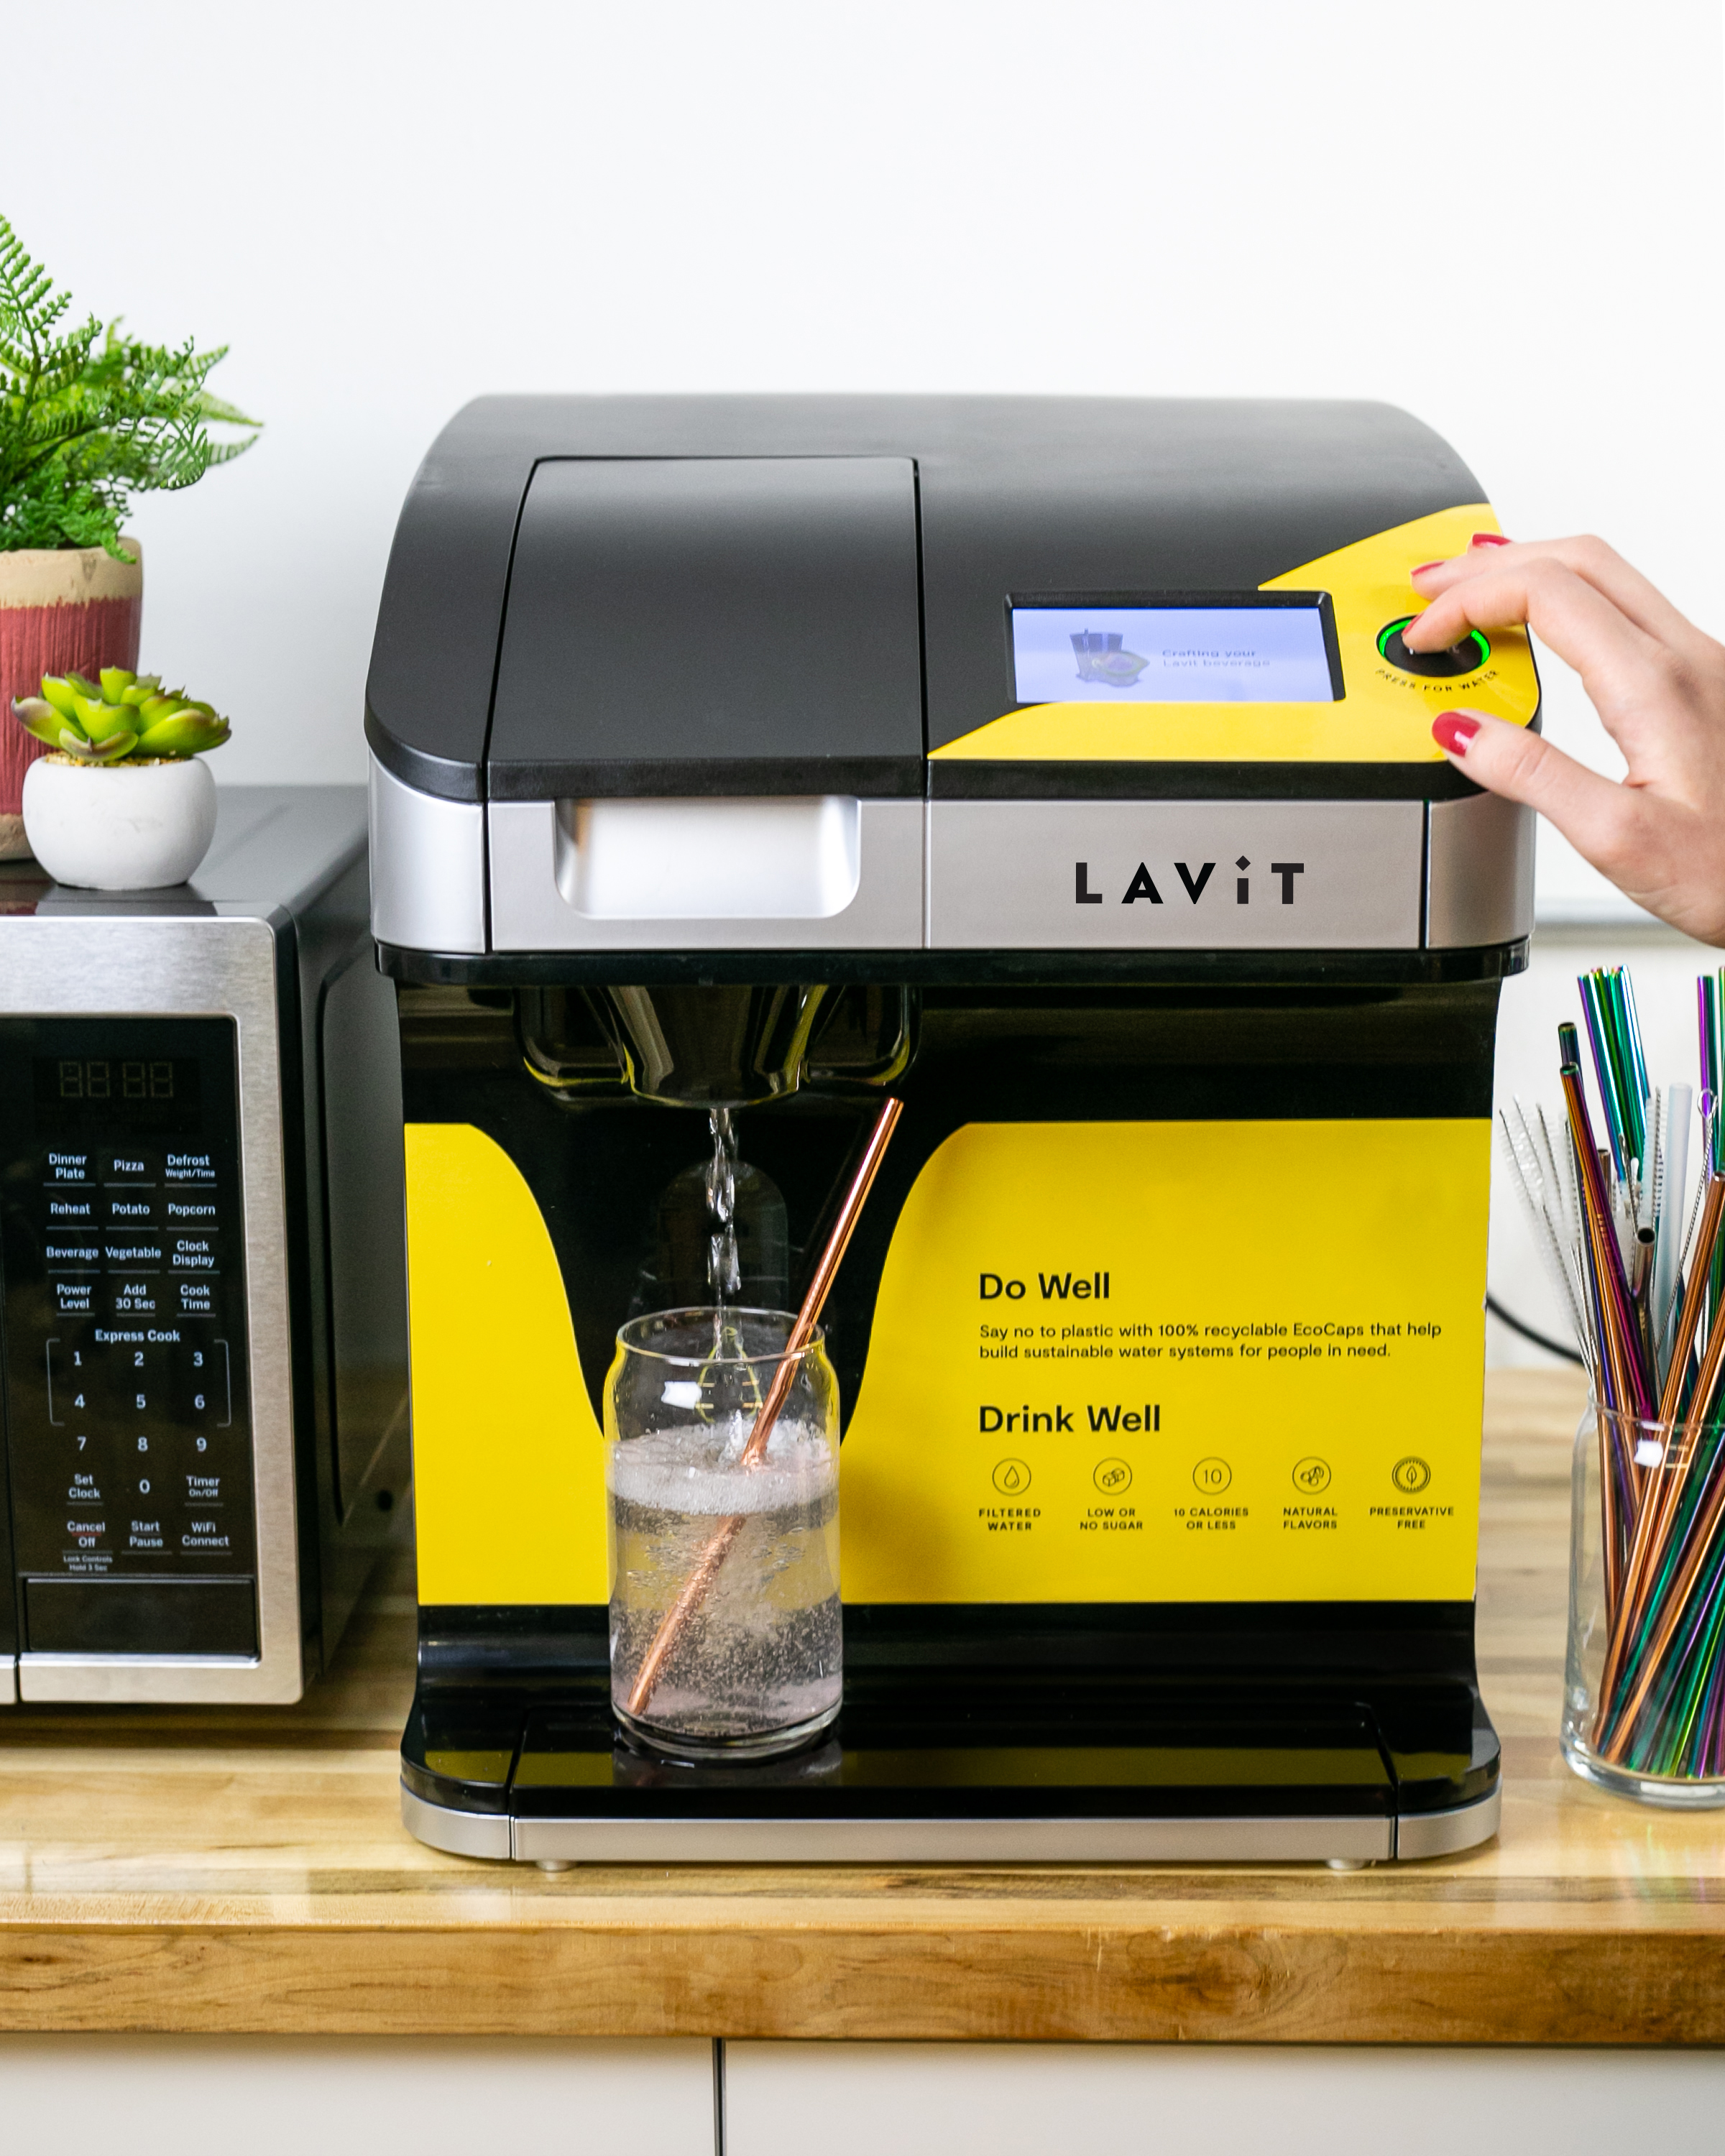 OurMachine - Lavit is a machine that sits atop your counter and provides still & sparkling water that's been filtered & chilled. Plus tons of other beverage options.And that's it. No hidden equipment, no weird requirements.